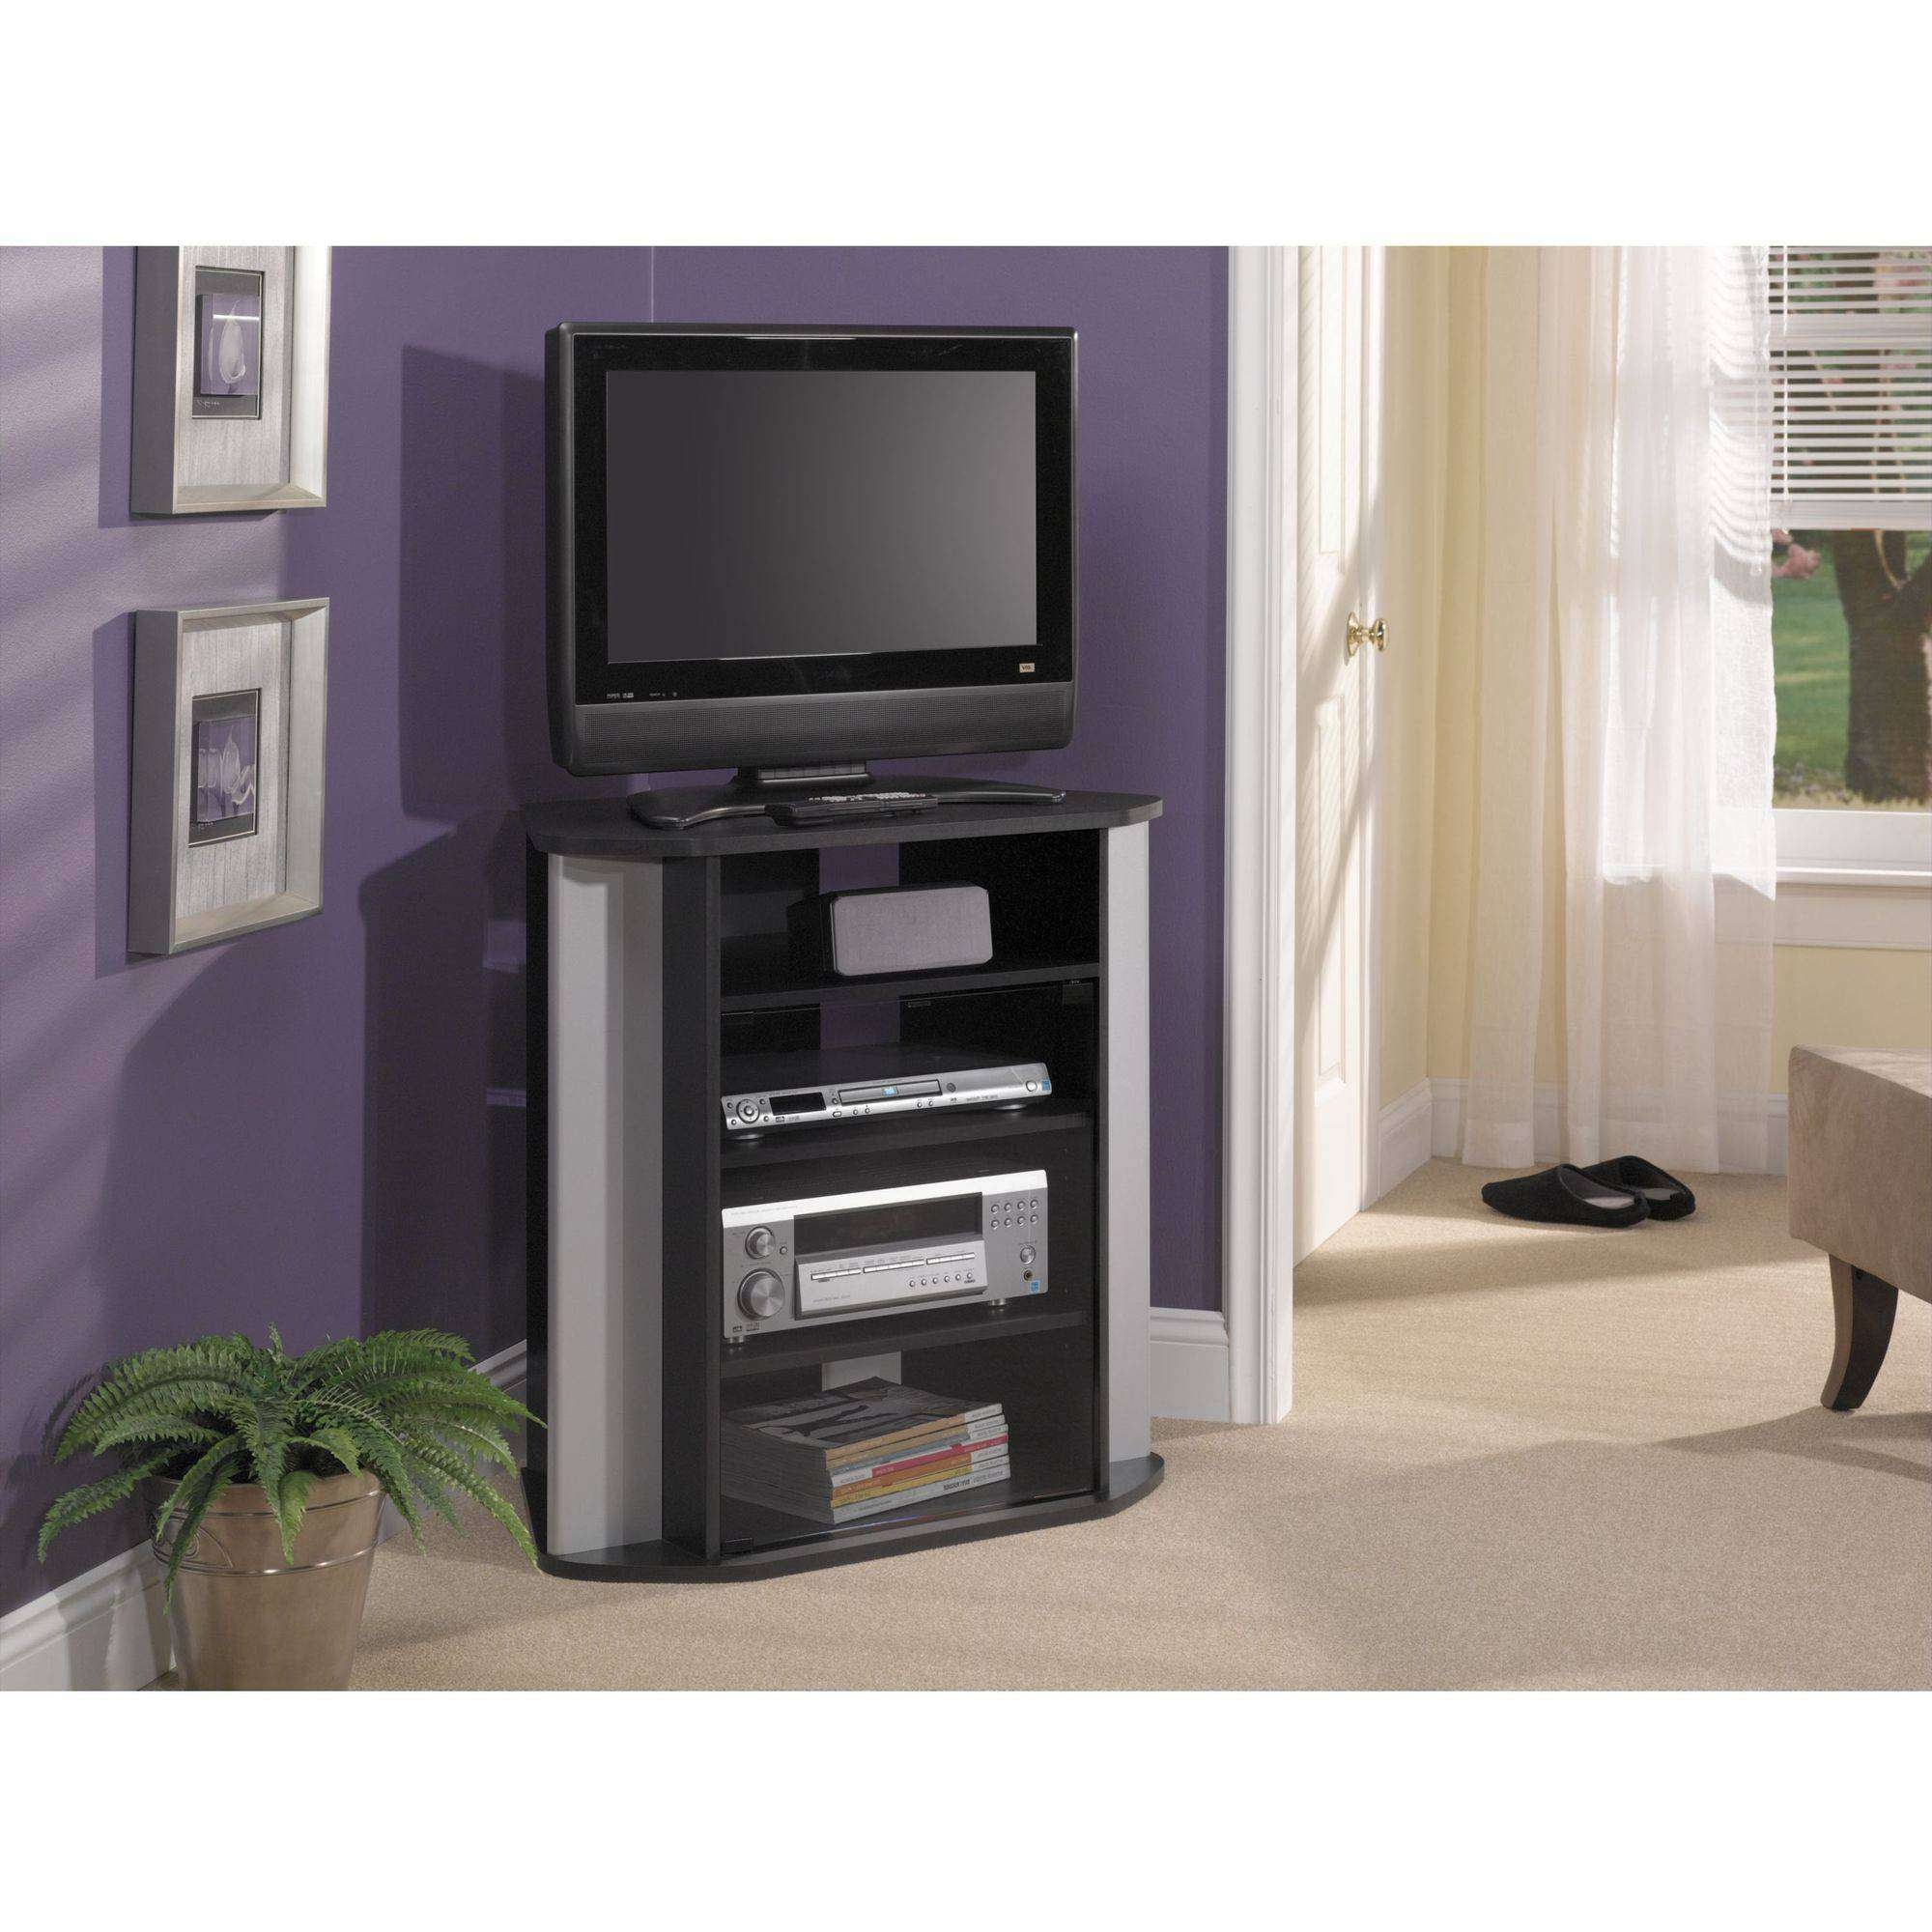 Bush Visions Black Tall Corner Tv Stand, For Tvs Up To 37 Inside Small Corner Tv Stands (View 1 of 20)